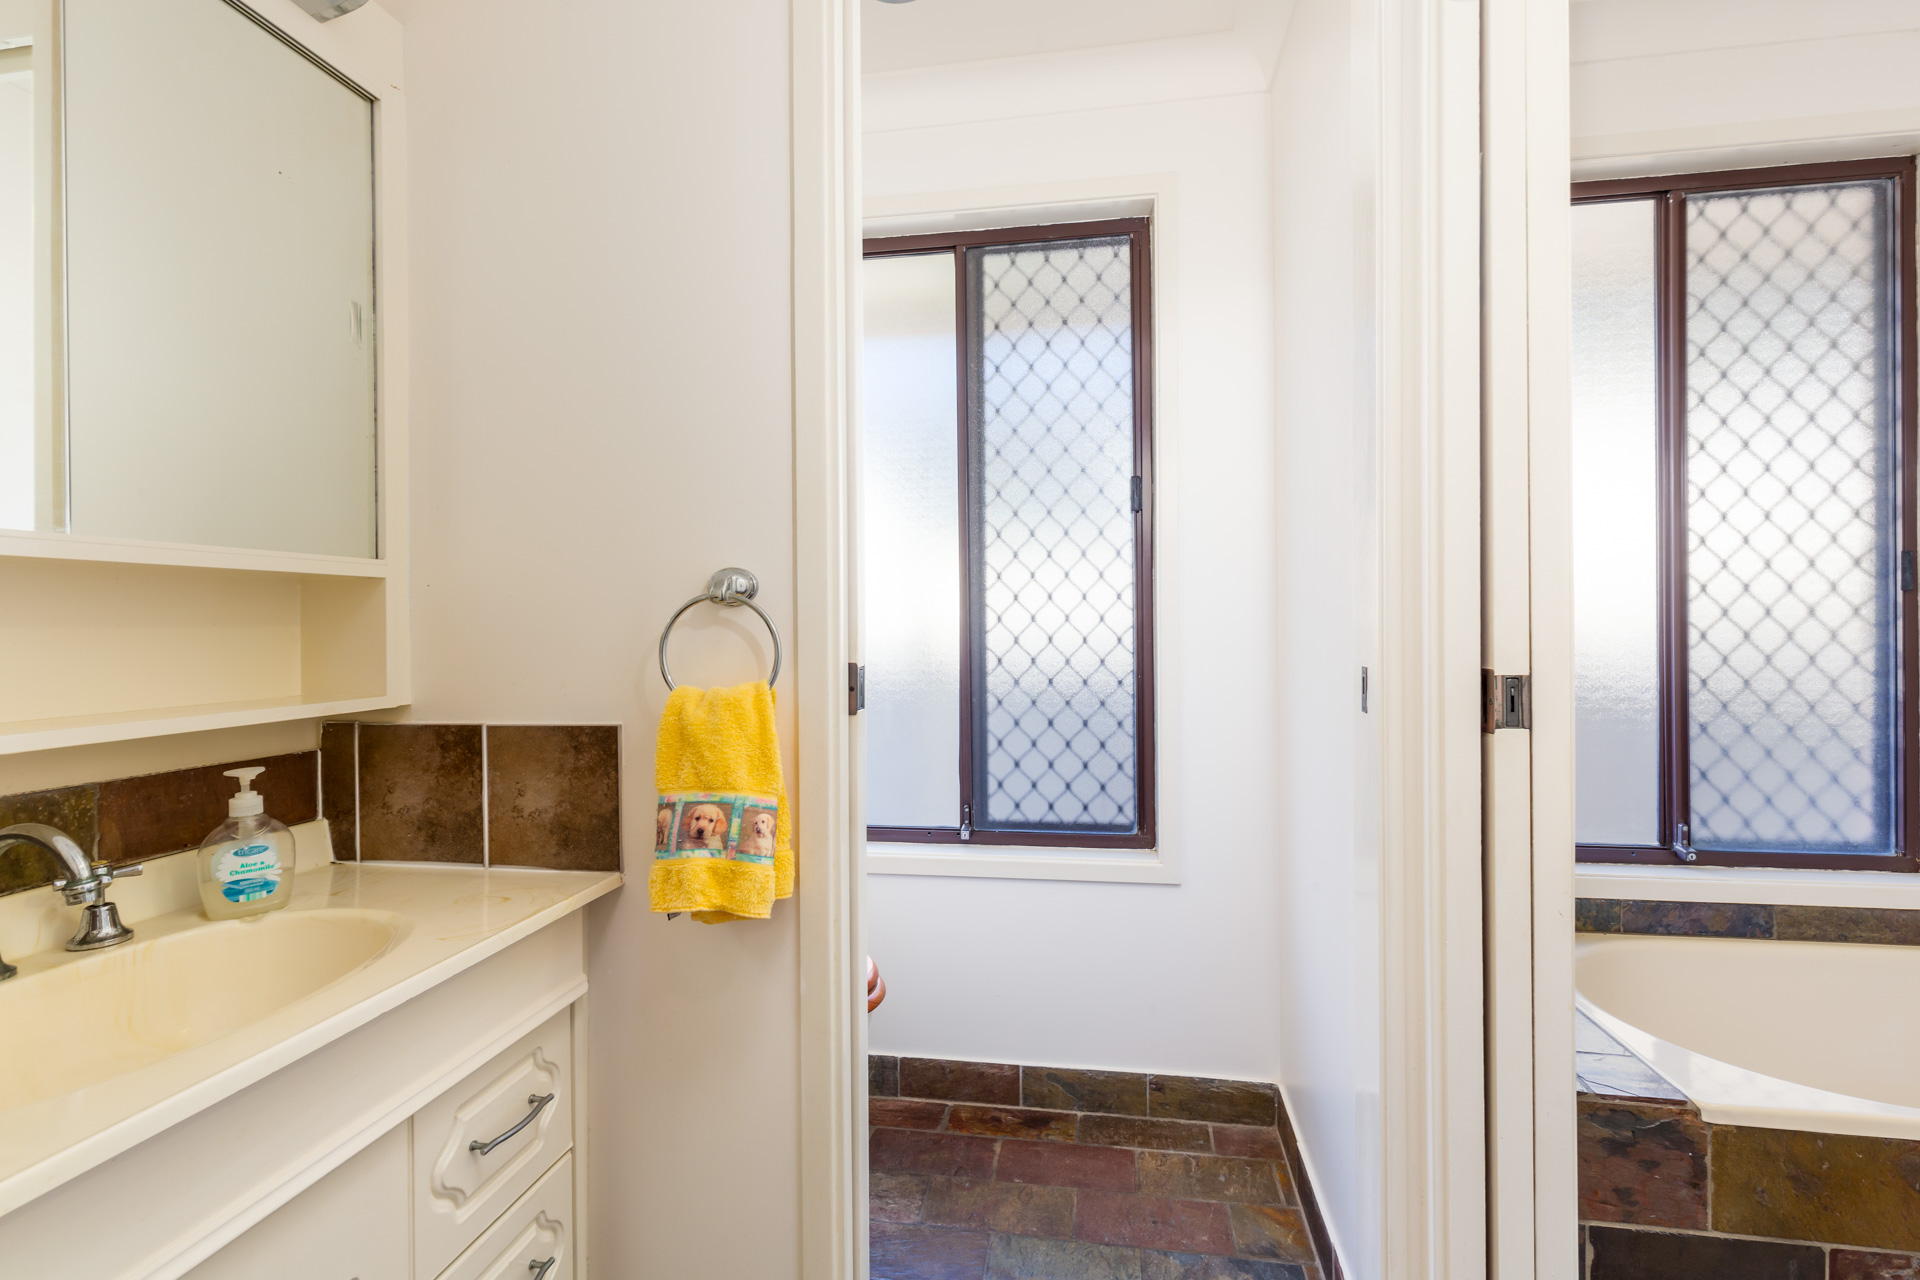 70 Medcalf St   Warners Bay (14 of 18)